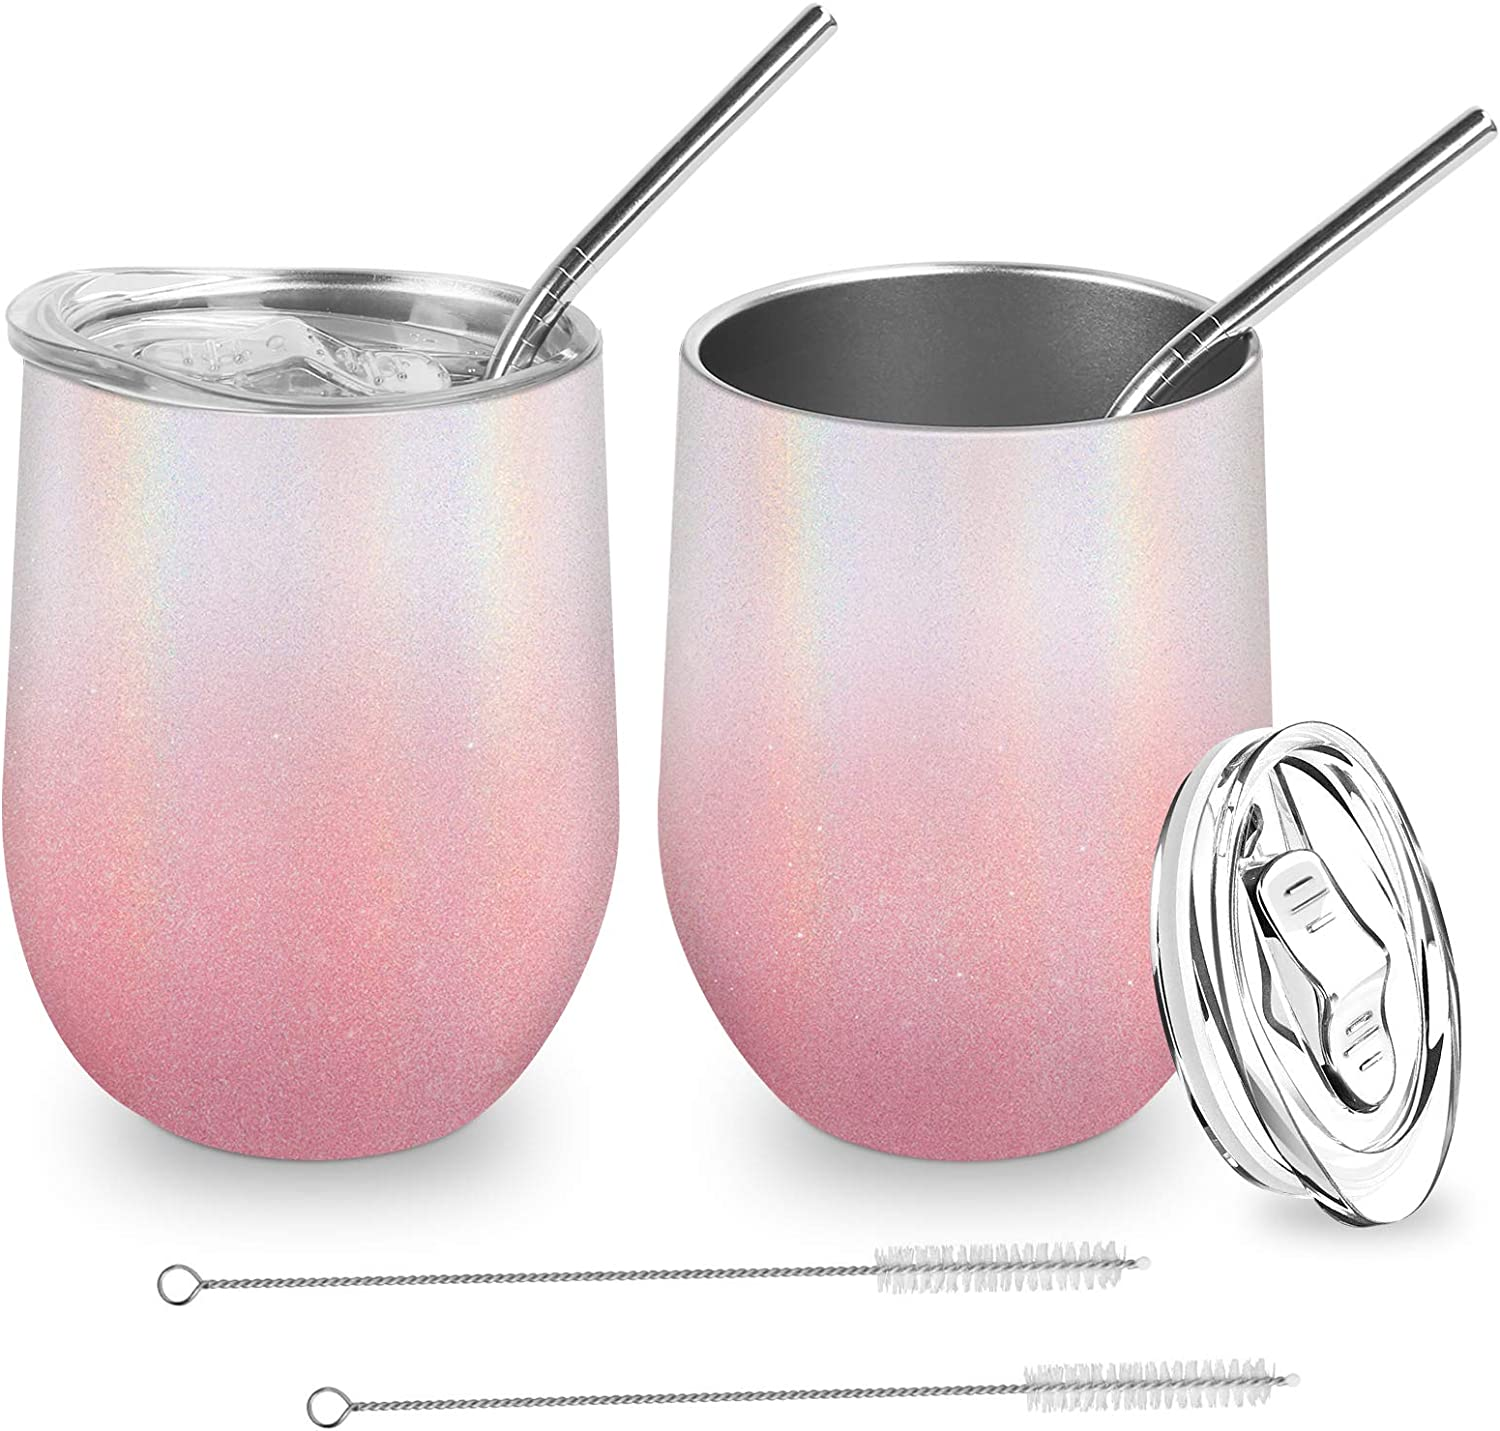 Wine Gifts for Women Christmas,2 Pack Stainless Steel Wine Tumbler with Lid and Straw,12oz Stemless Insulated Wine Glasses,Spill Proof Unbreakable Coffee Mug Cup Set for Birthday (Glitter Pink)